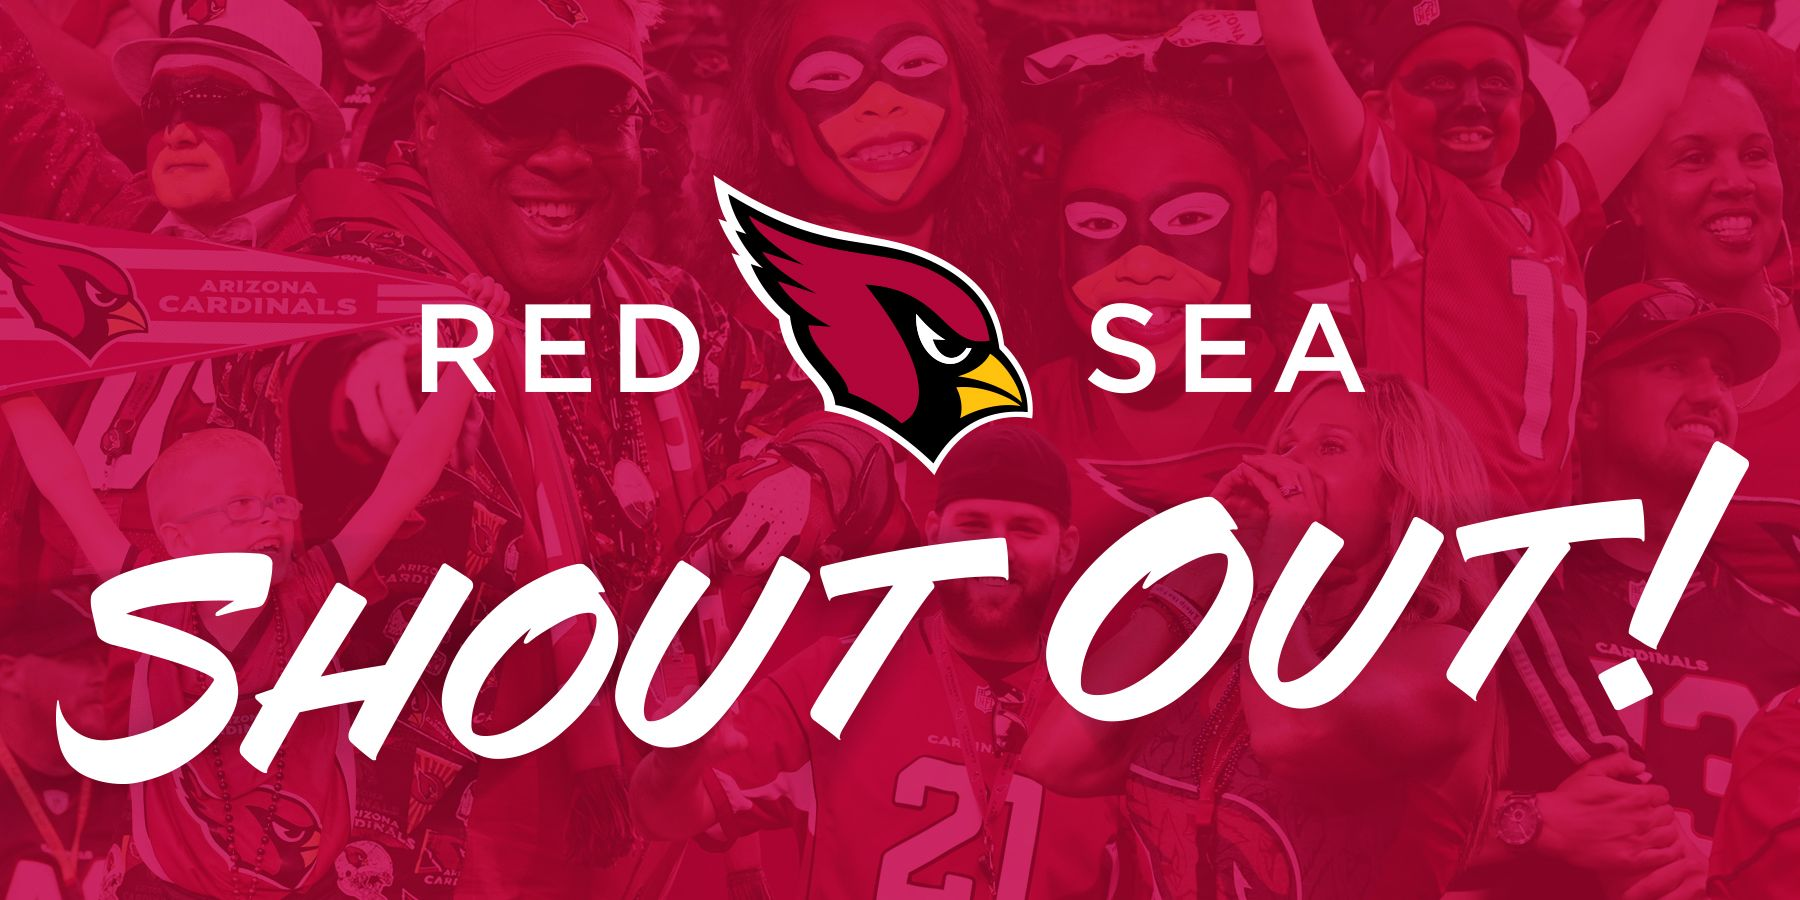 Arizona Cardinals 2020 Fan Contest Red Sea Shout Out